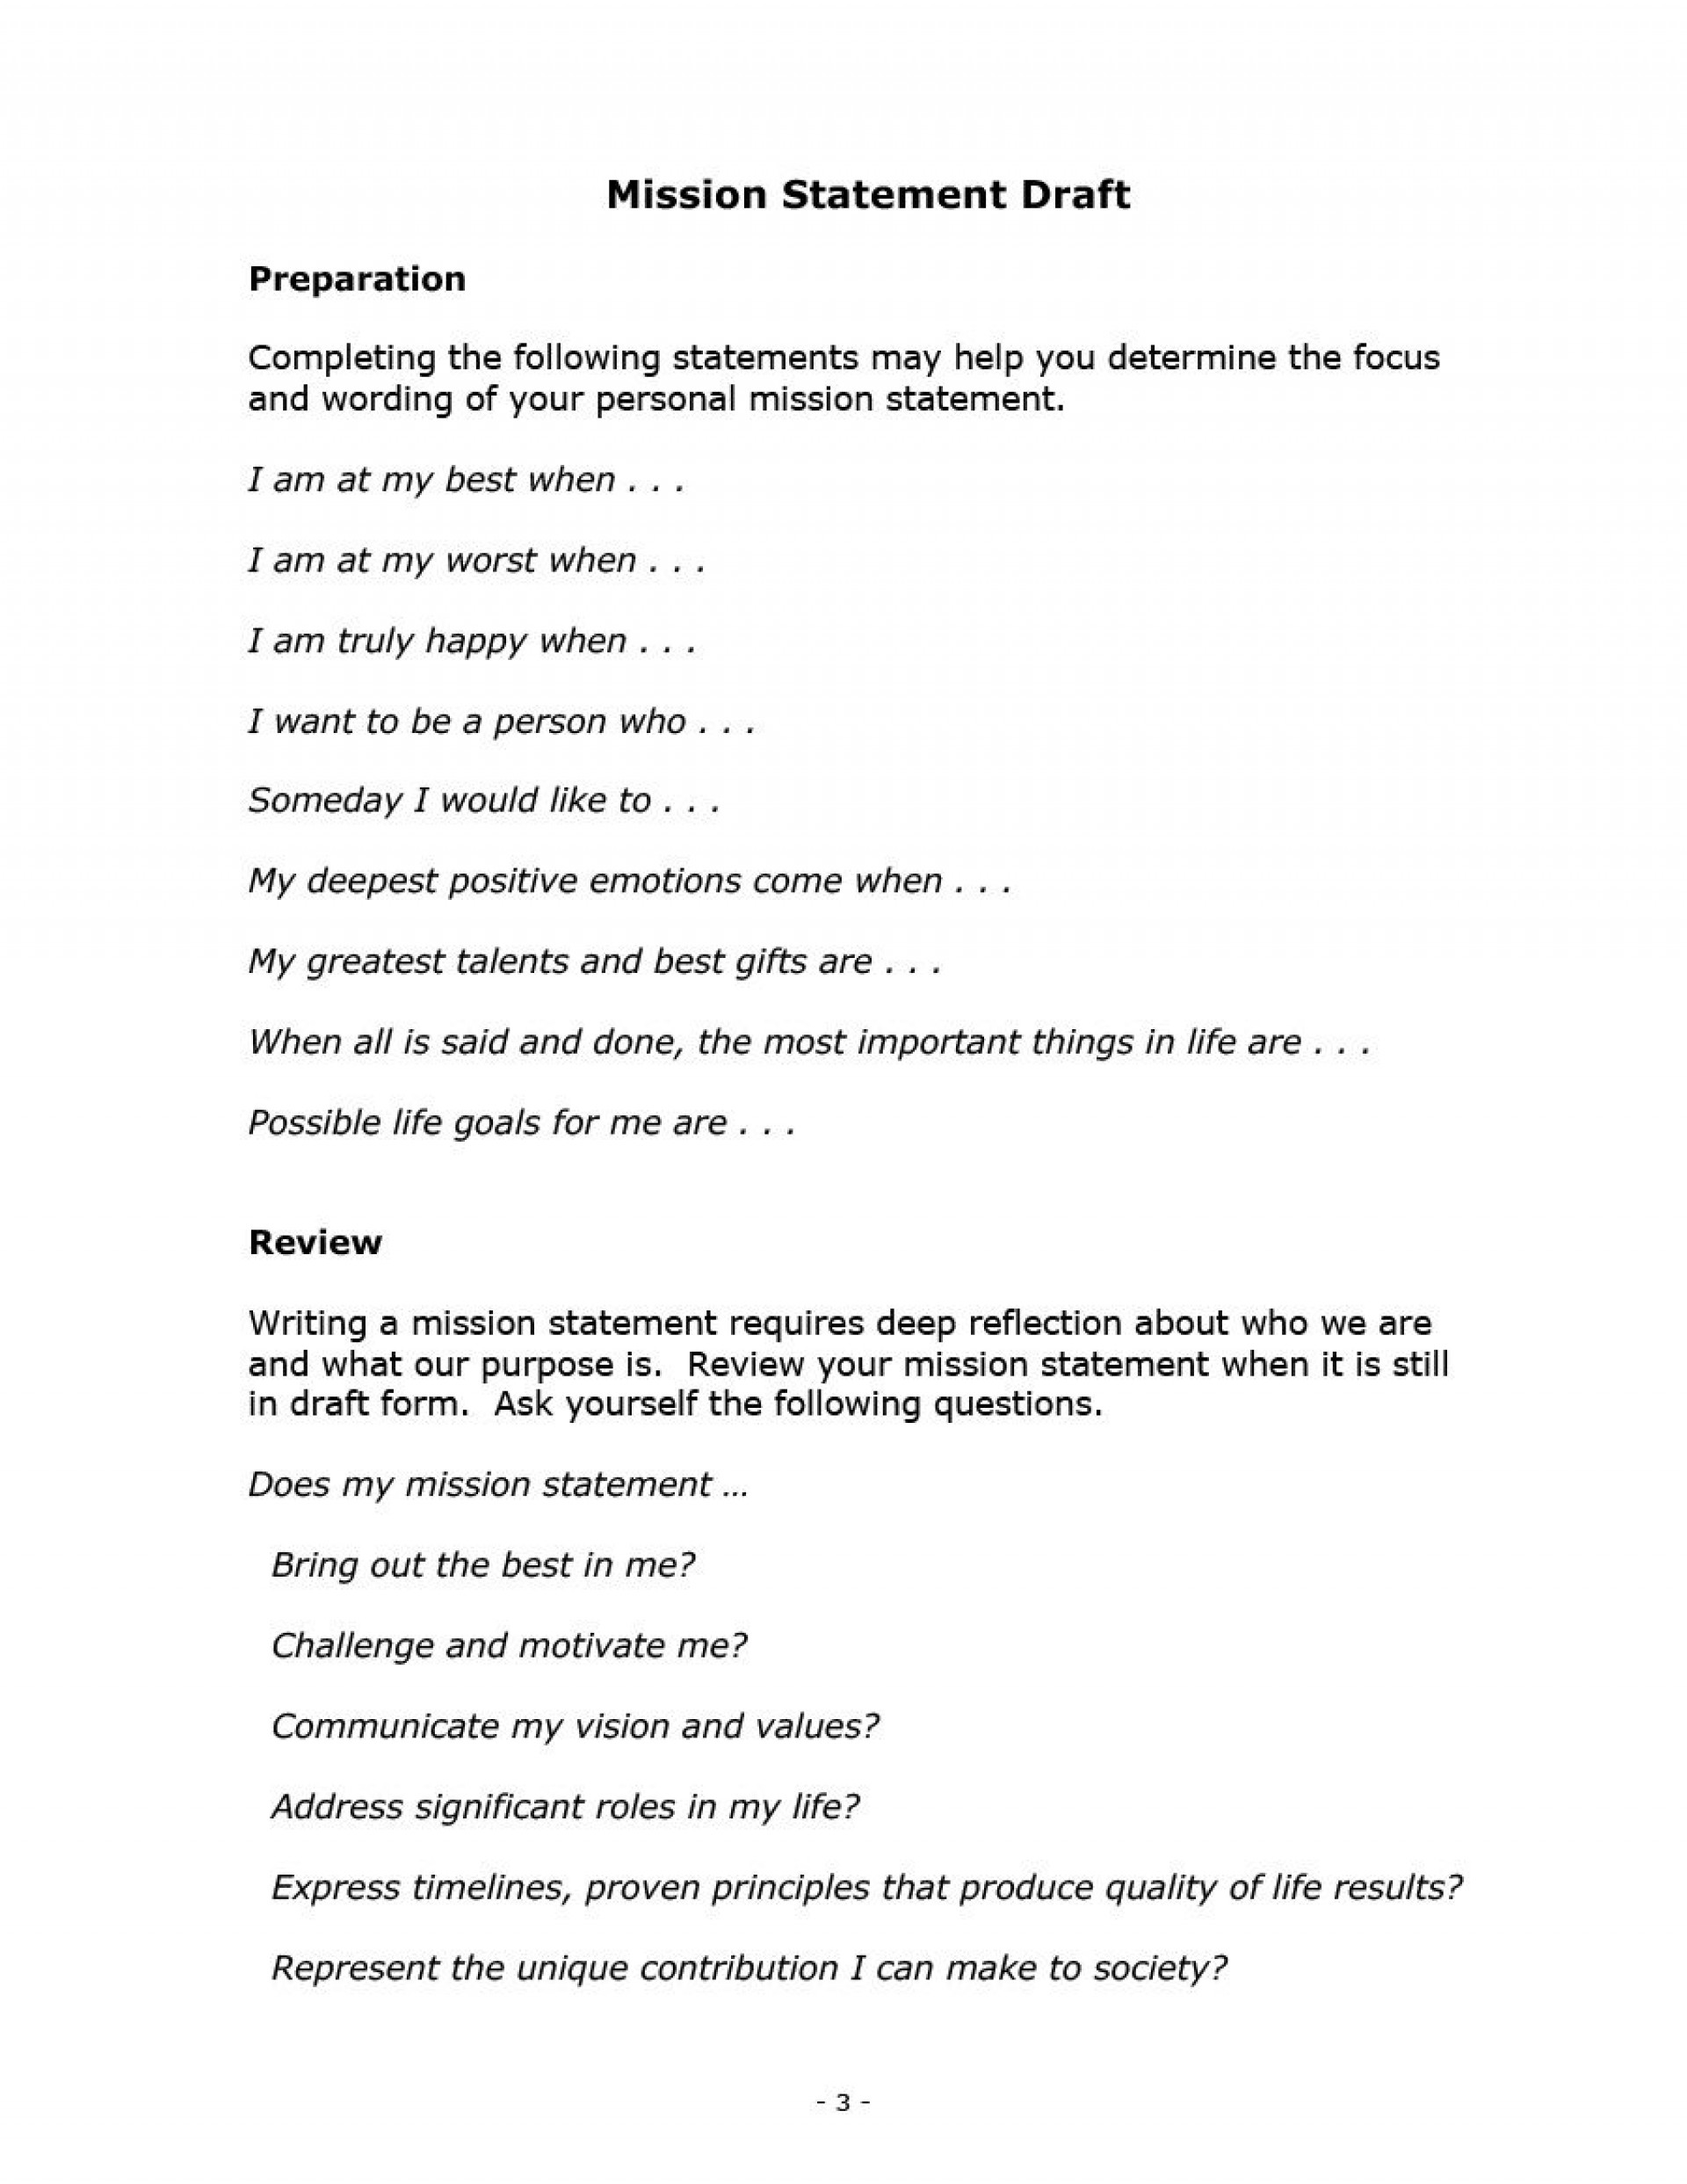 005 Surprising Personal Mission Statement Template Design  Templates Example Student Good1920